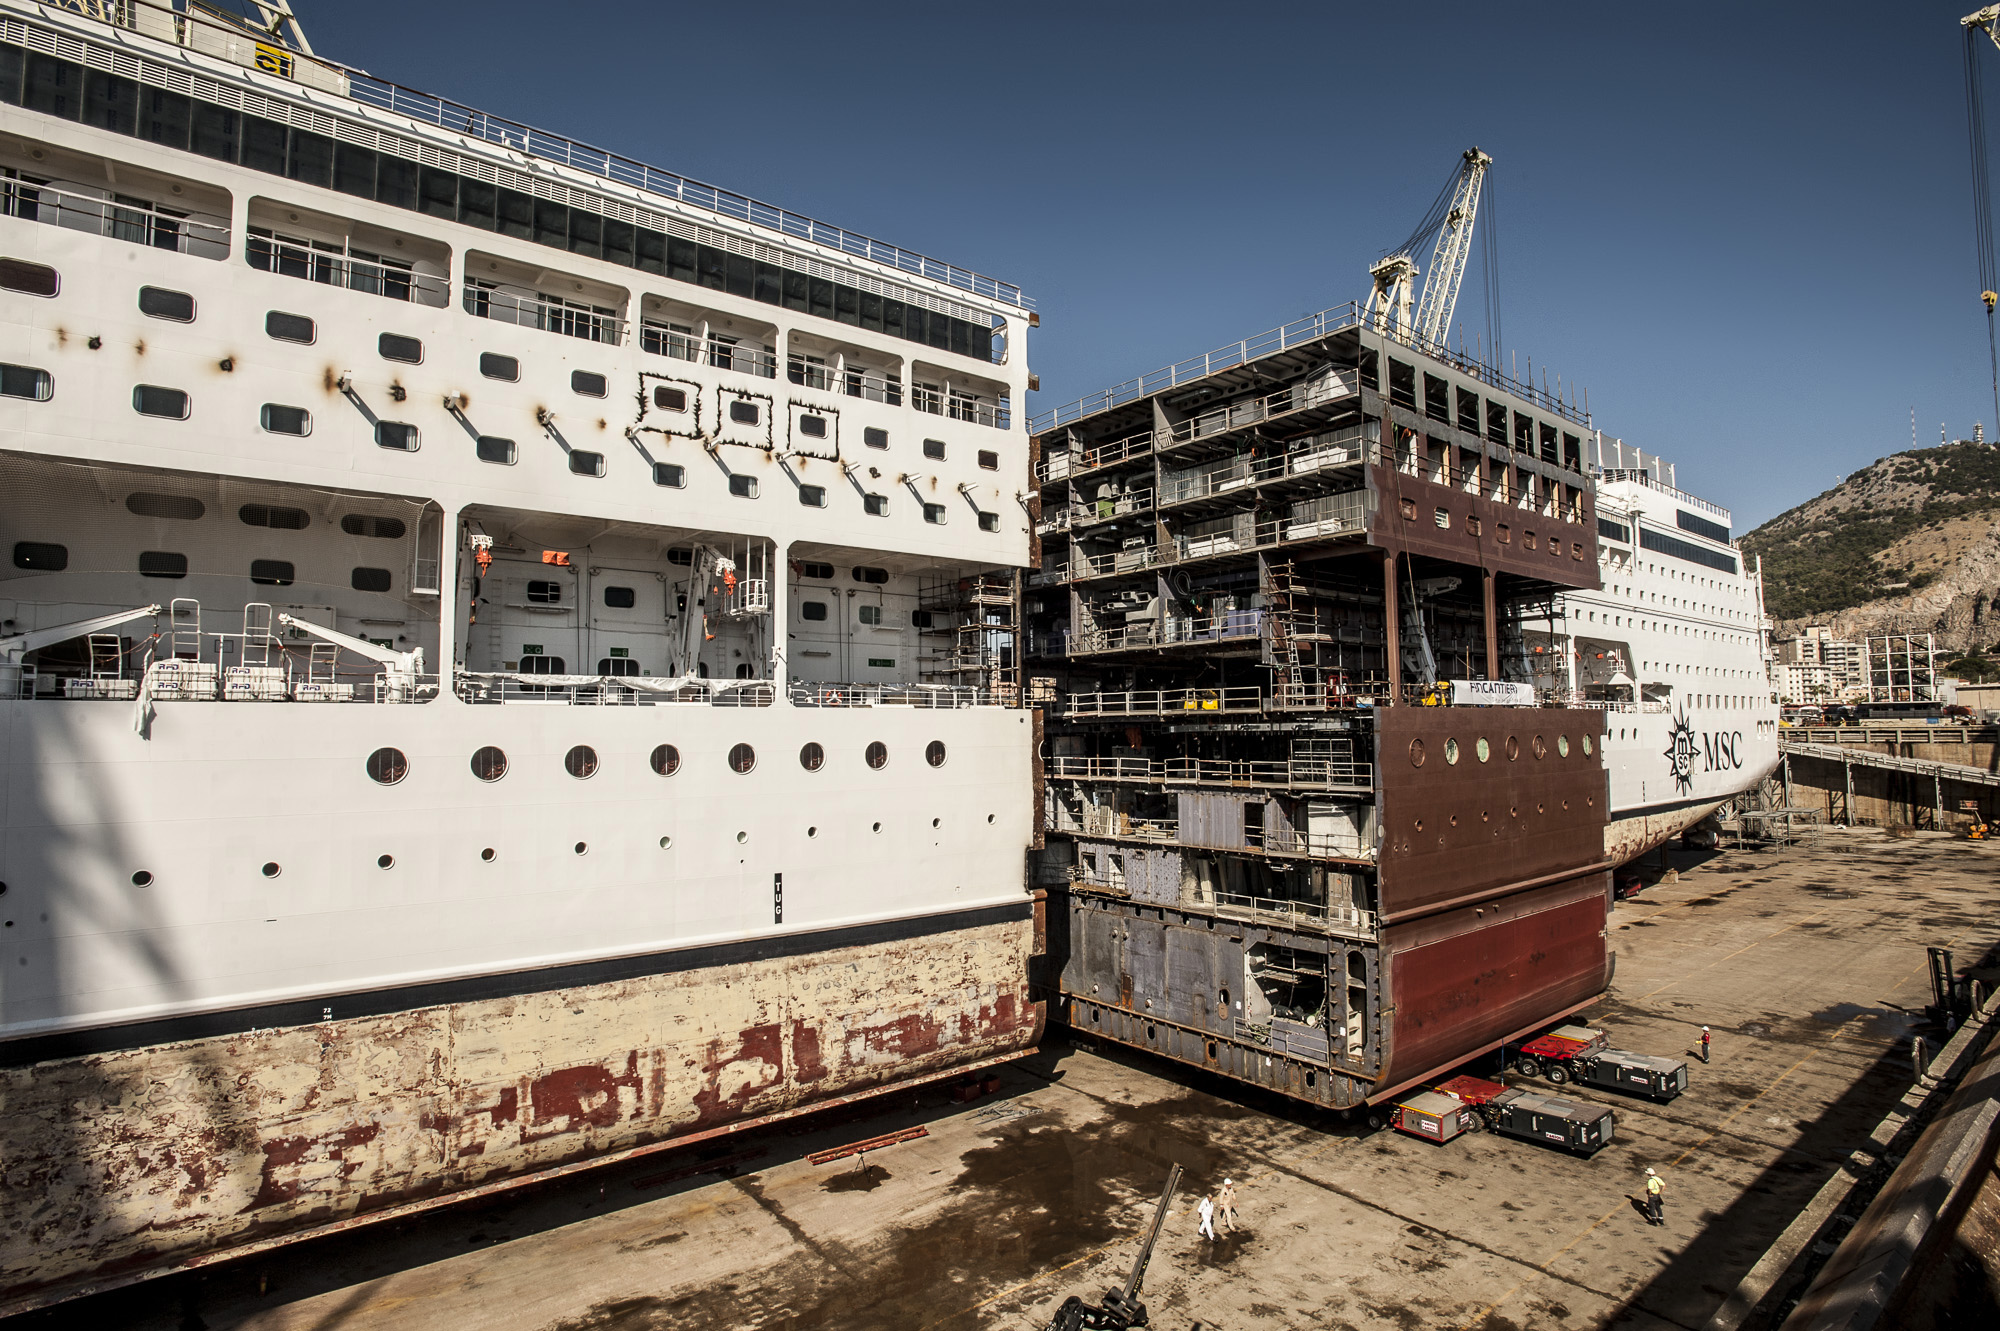 New block on the skids: The new section, dwarfing workers on the quayside, is slotted into place on MSC Armonia (Picture: MSC Cruises)